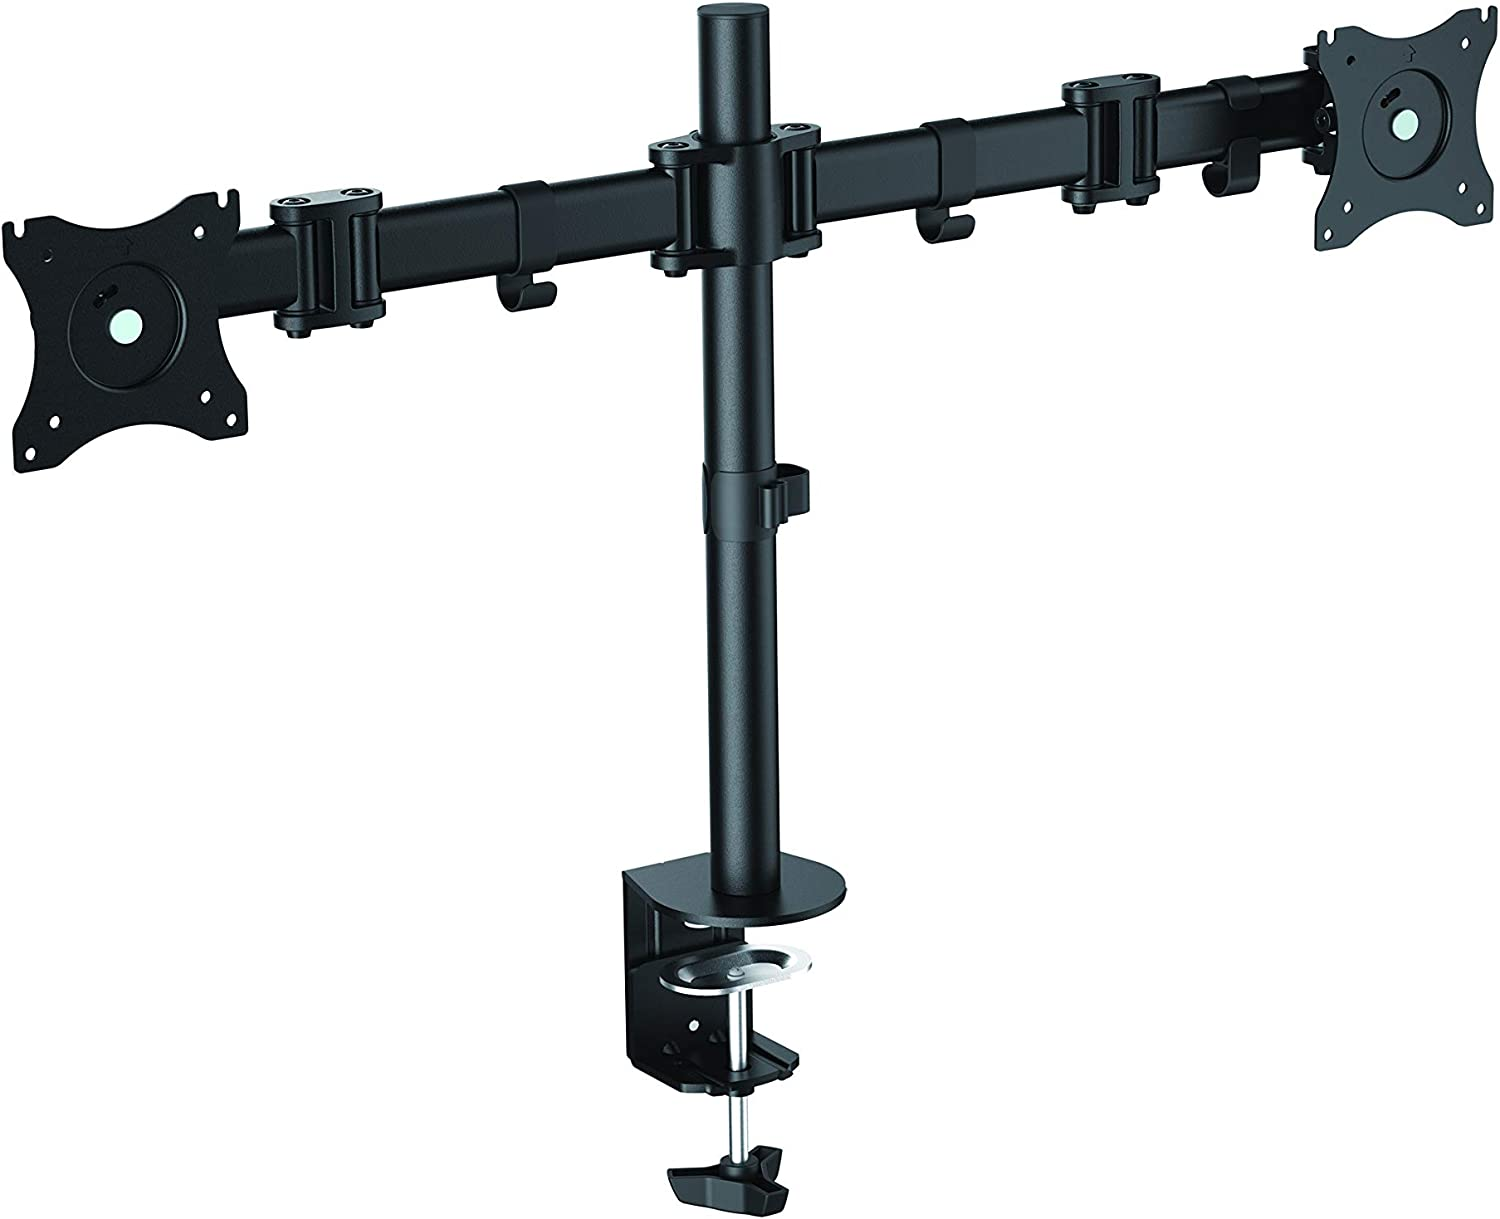 Rocelco Double Articulated Dual Monitor Arm